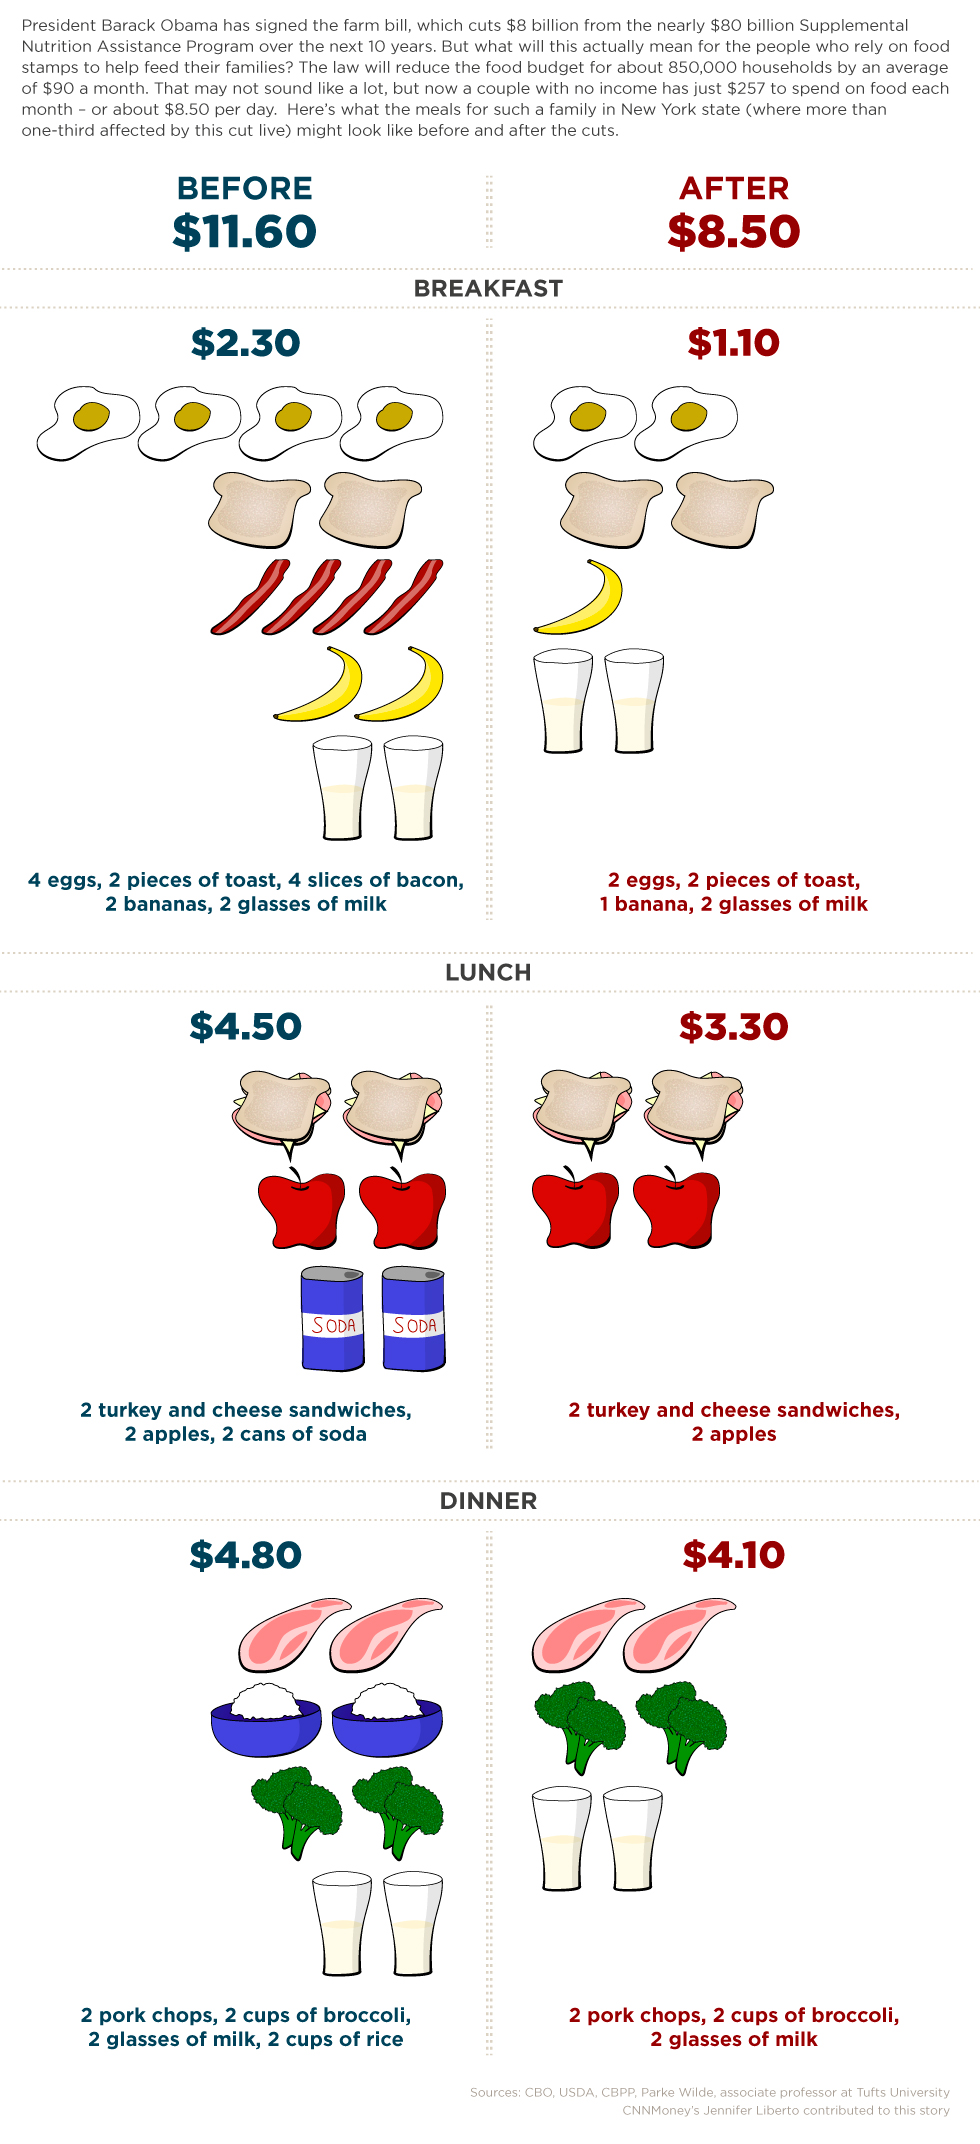 What food stamps could purchase, before and after